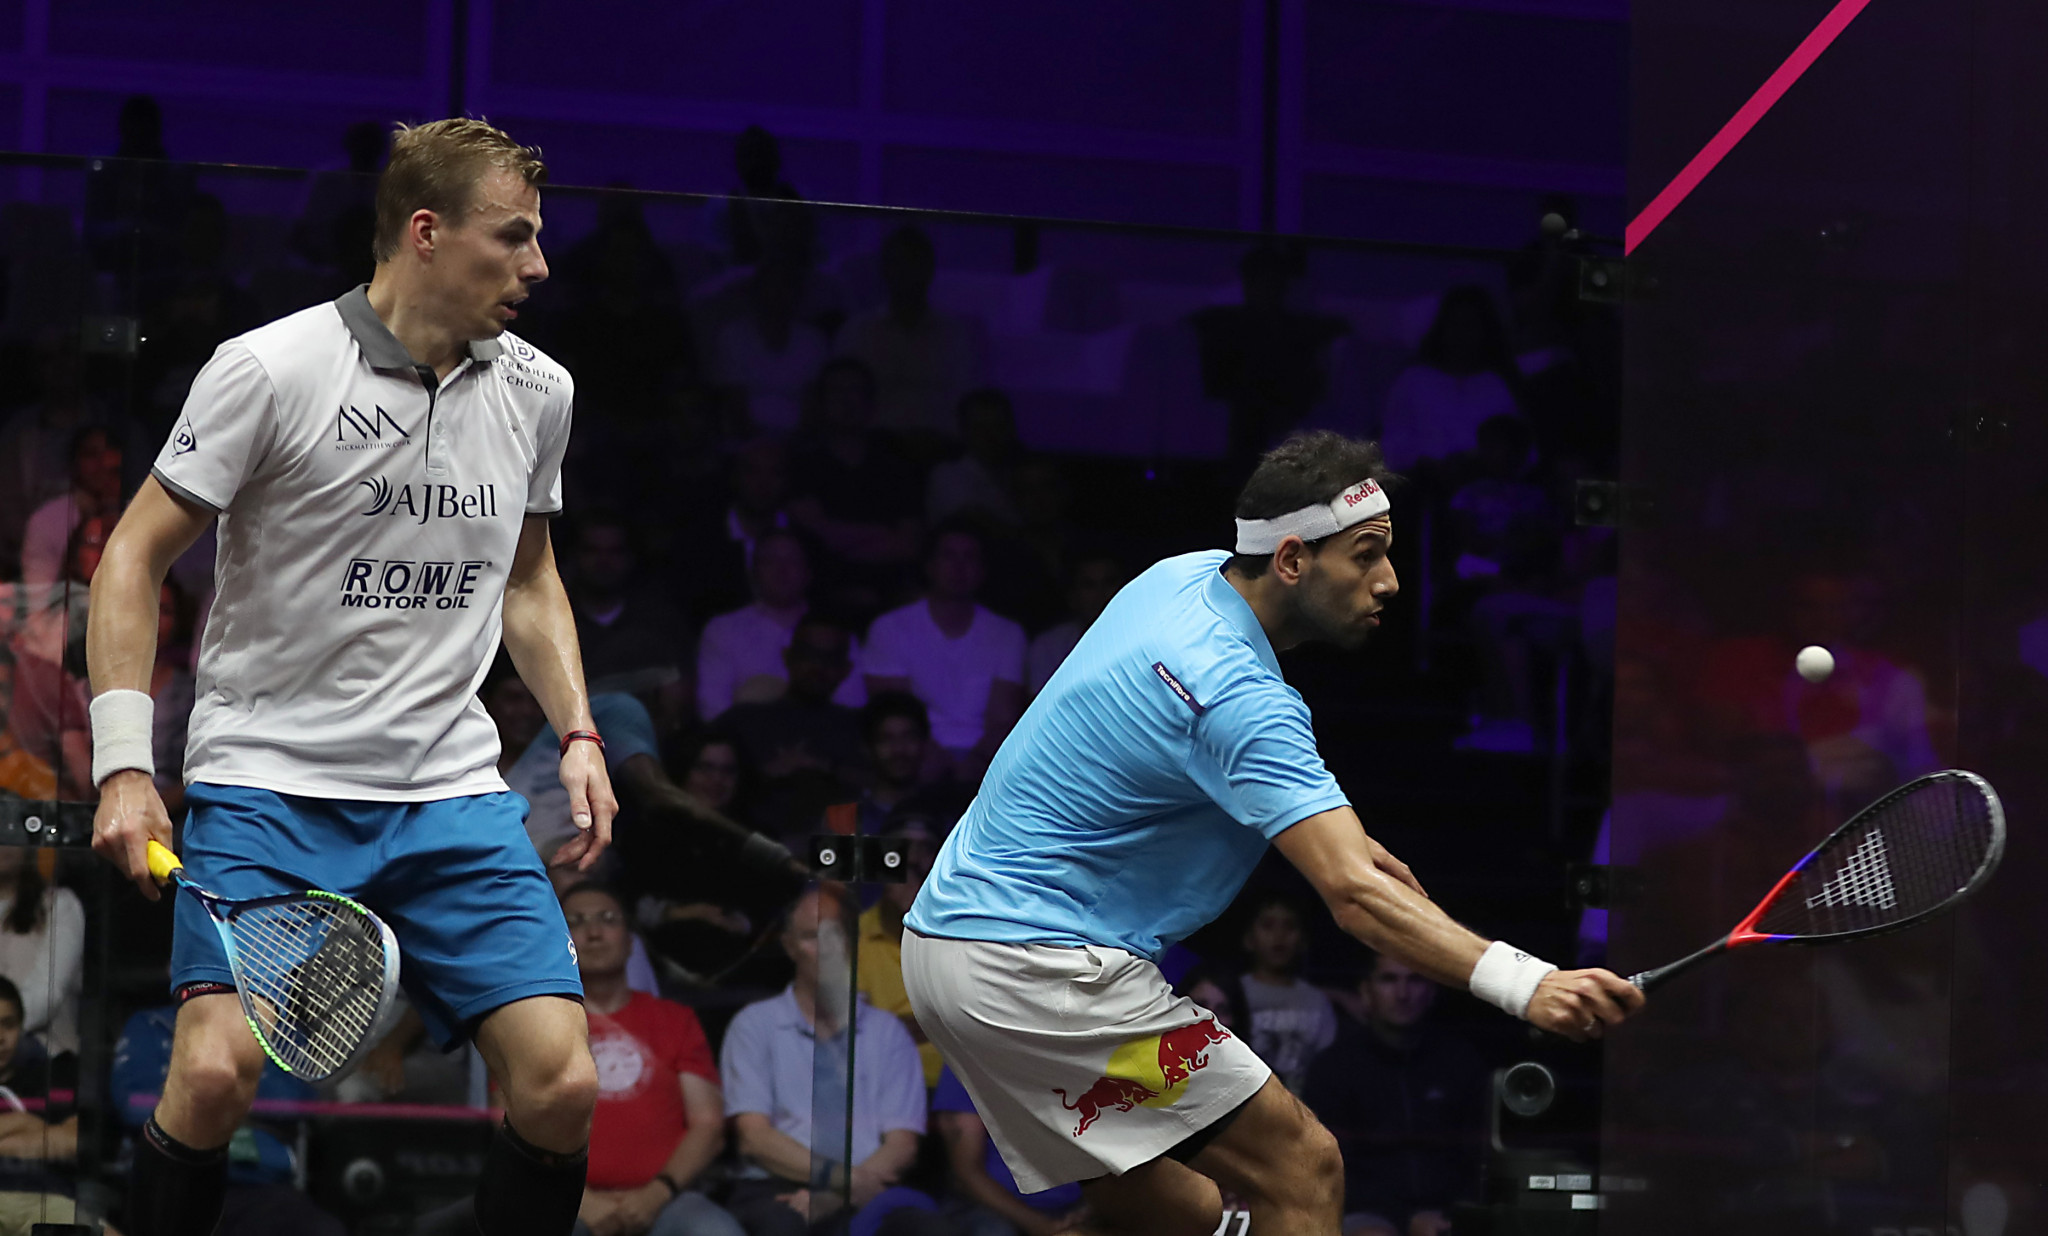 Matthew's 20-year squash career ends with defeat at PSA World Series in Dubai - and a standing ovation